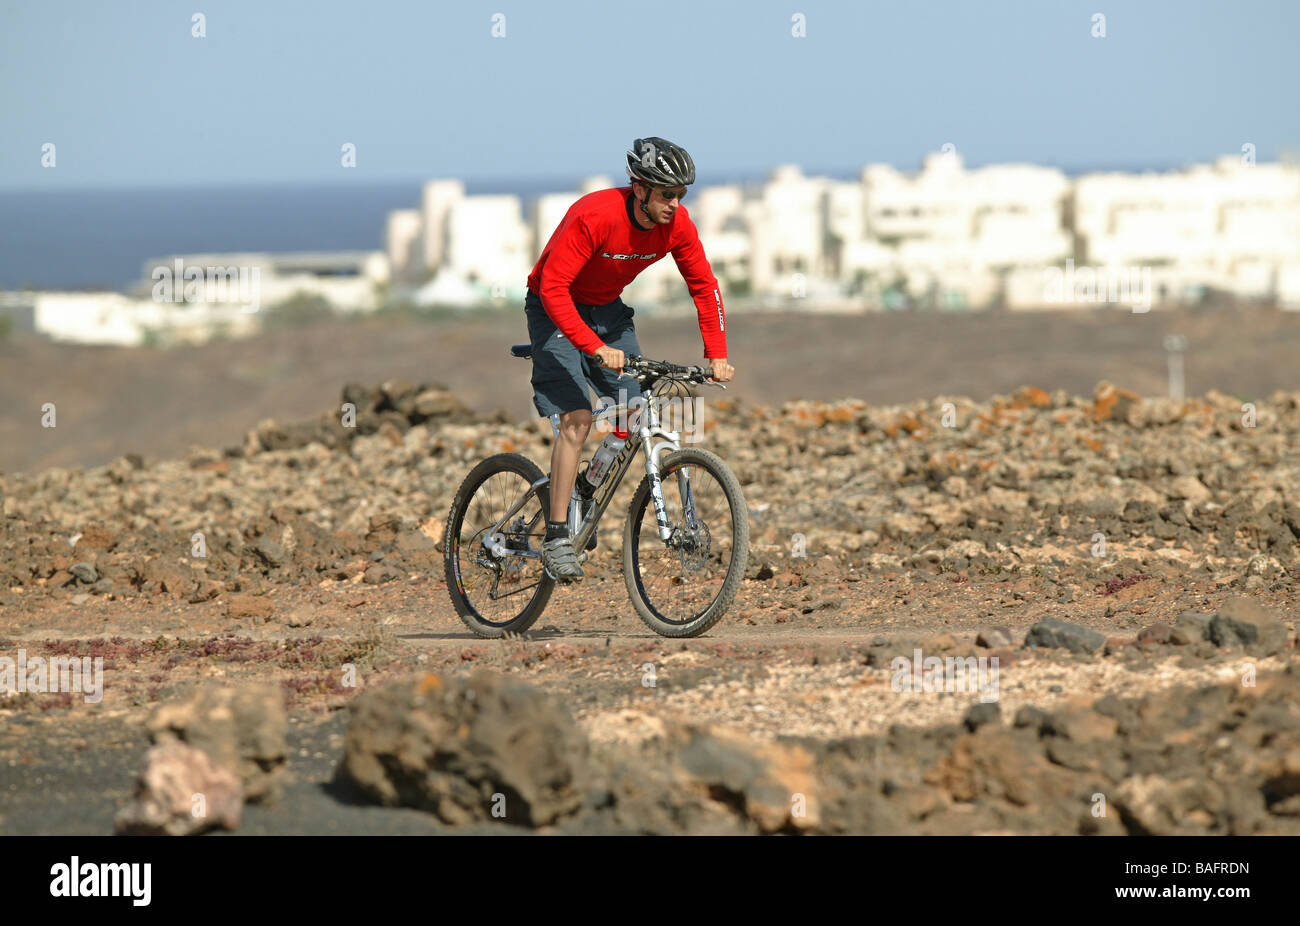 A Mountain biker riding his MTB in rocky terrain. - Stock Image